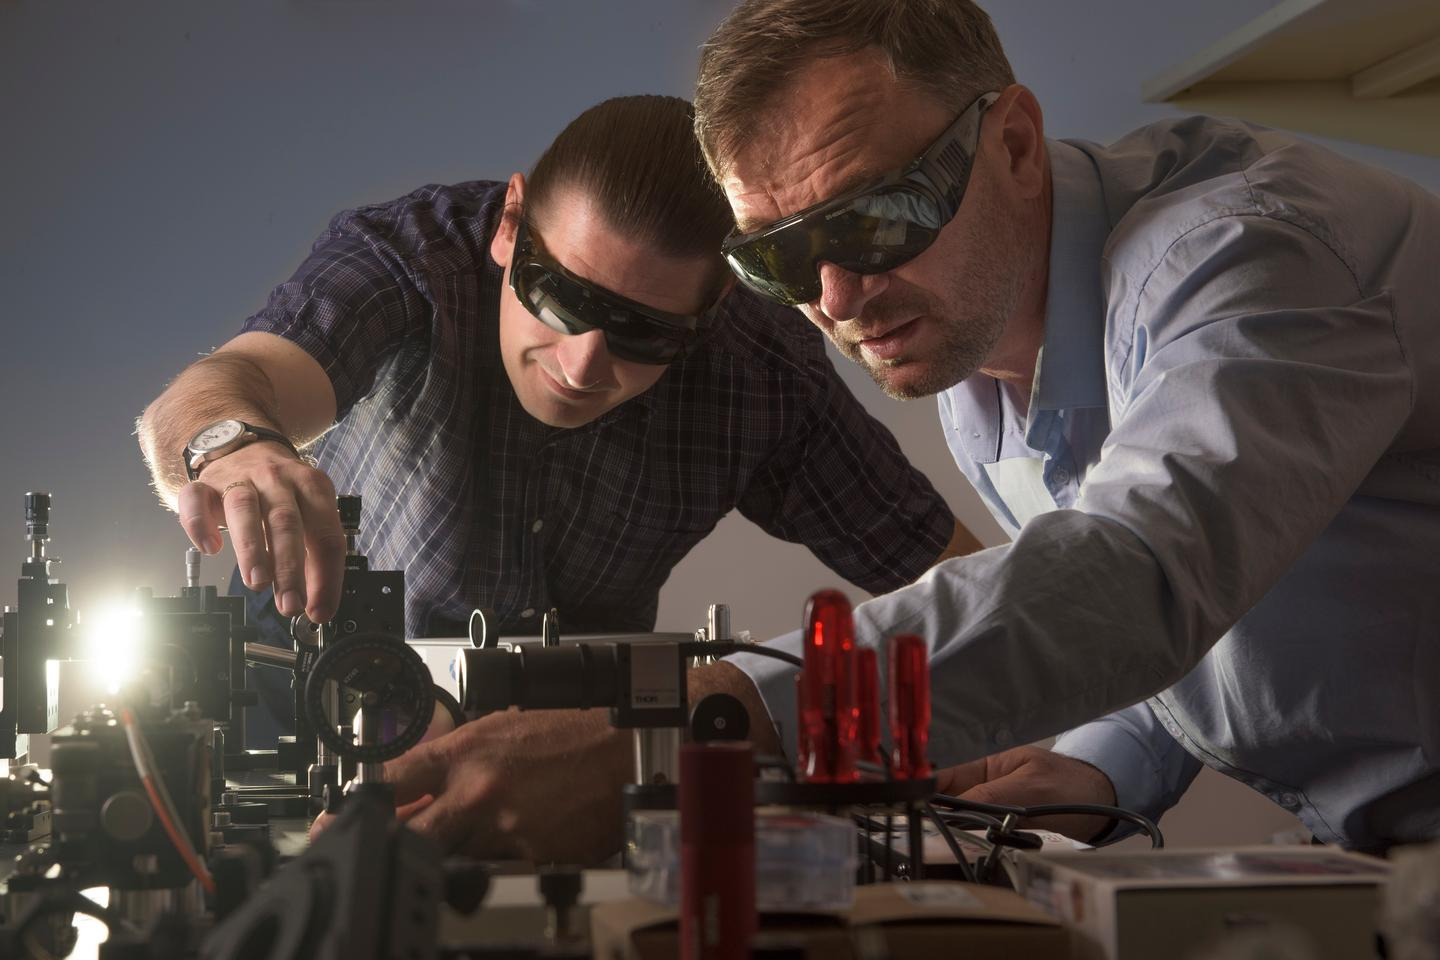 Professor Andrey Miroshnichenko (left) and Dr Vladlen Shvedov (right) in the lab